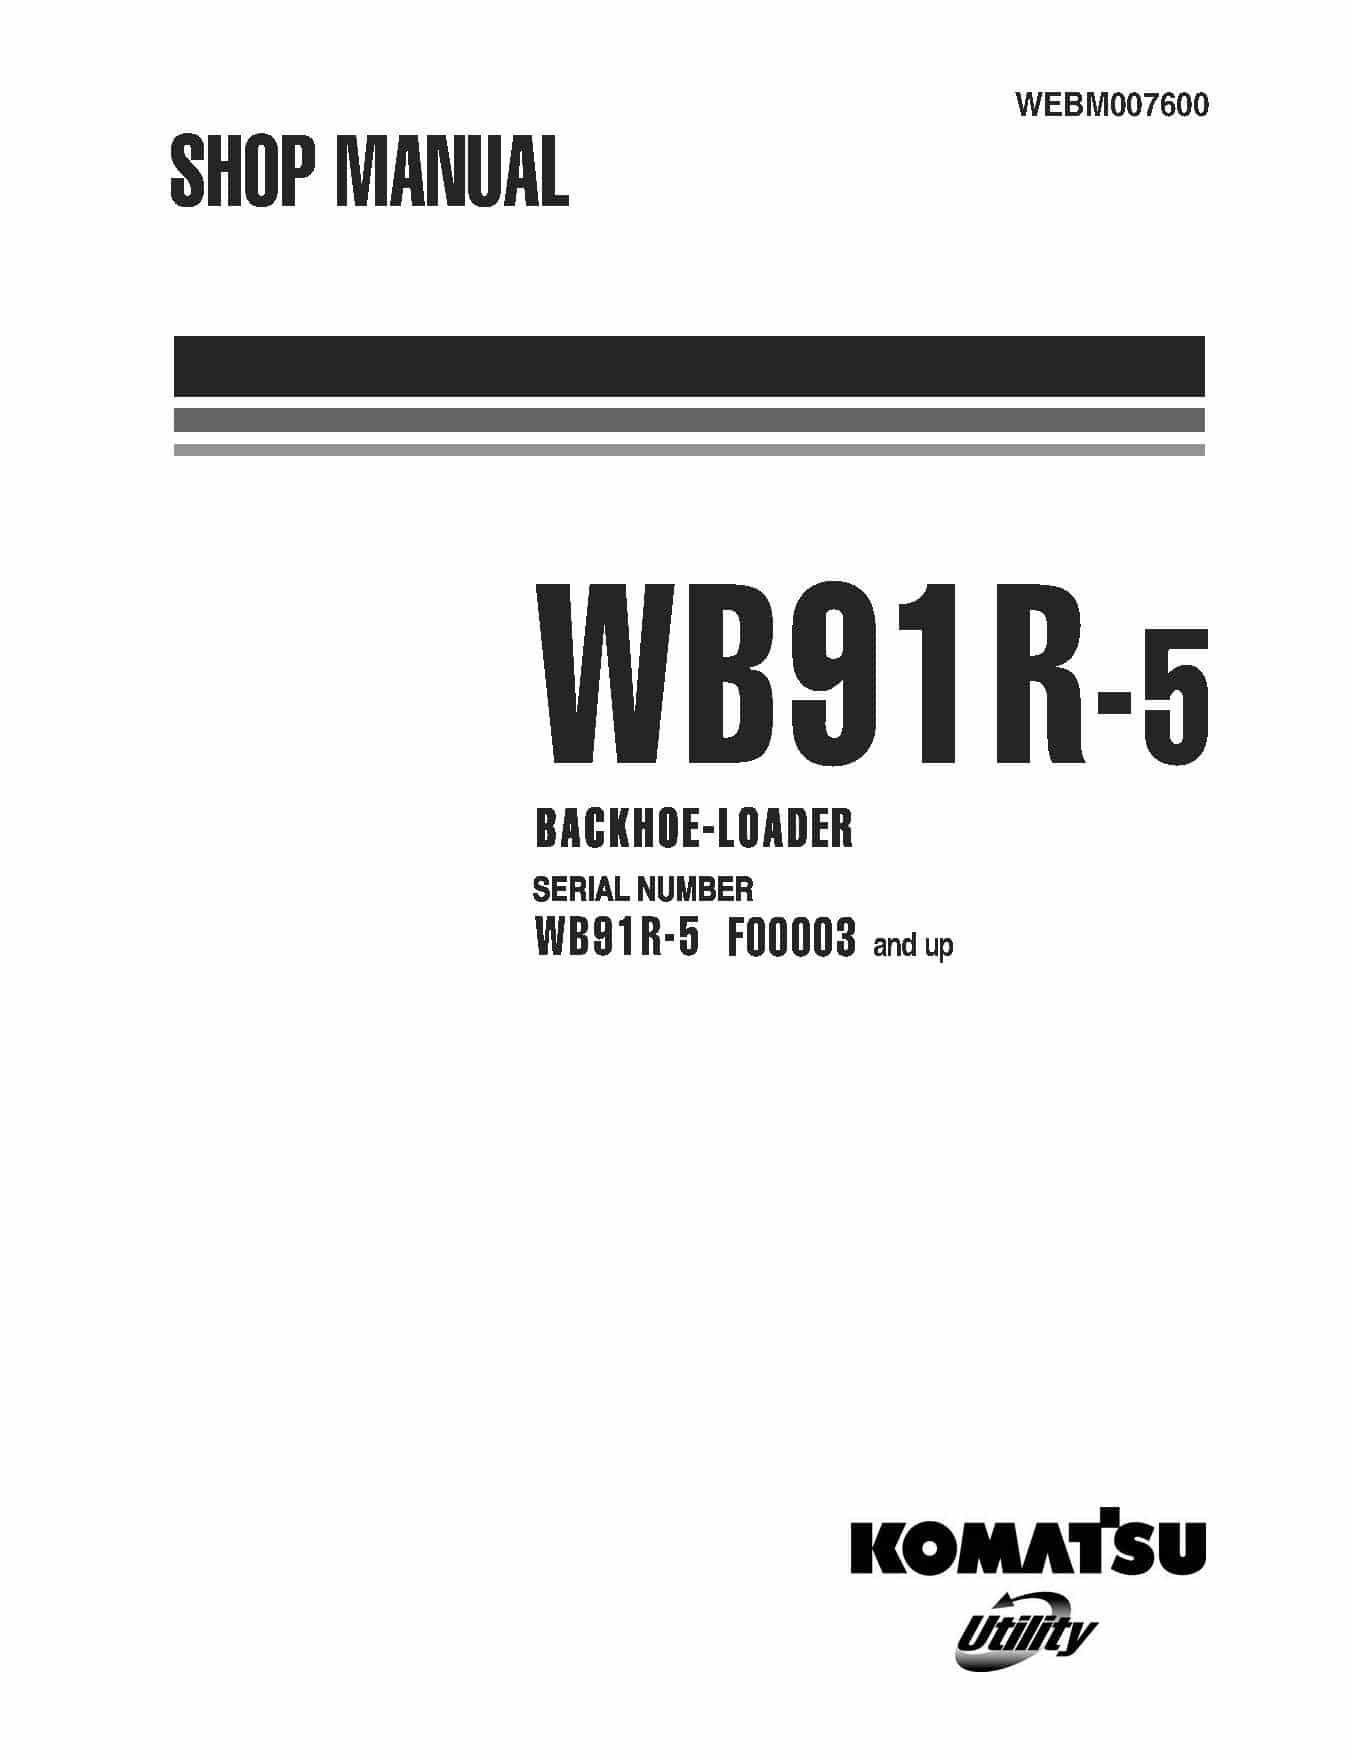 Komatsu WB91R-5 BACKHOE LOADER Workshop Repair Service